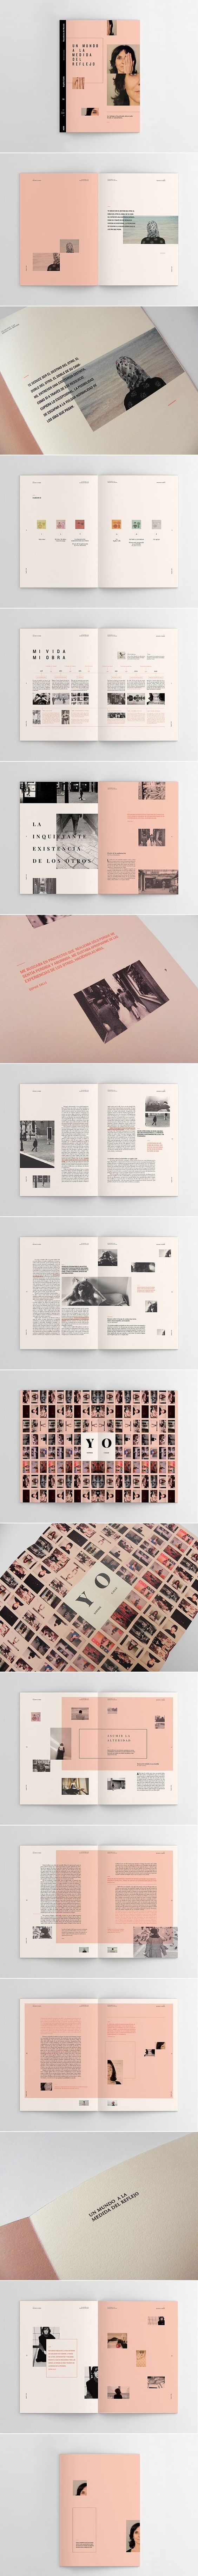 Cover & Layout / Sophie Calle - Hacedores de Mundo on Behance I like this book, i like the simple way that the work has been laid out. This book is published professionaly.